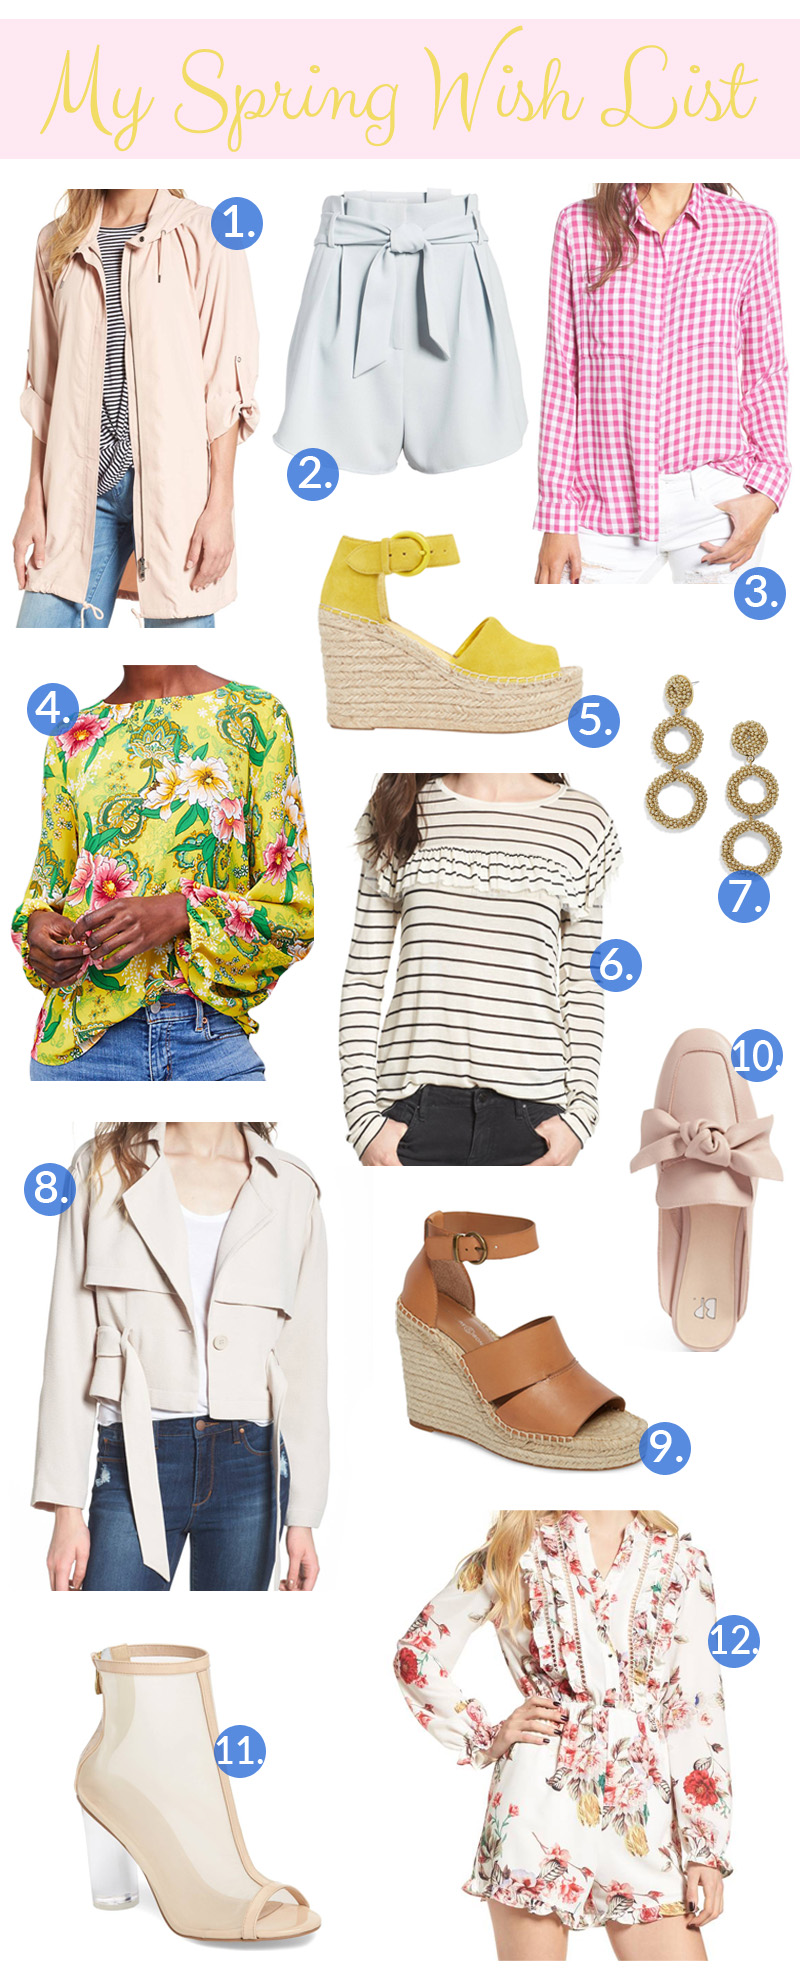 Spring Fashion Wish List by popular East Memphis fashion blogger Walking in Memphis in High Heels